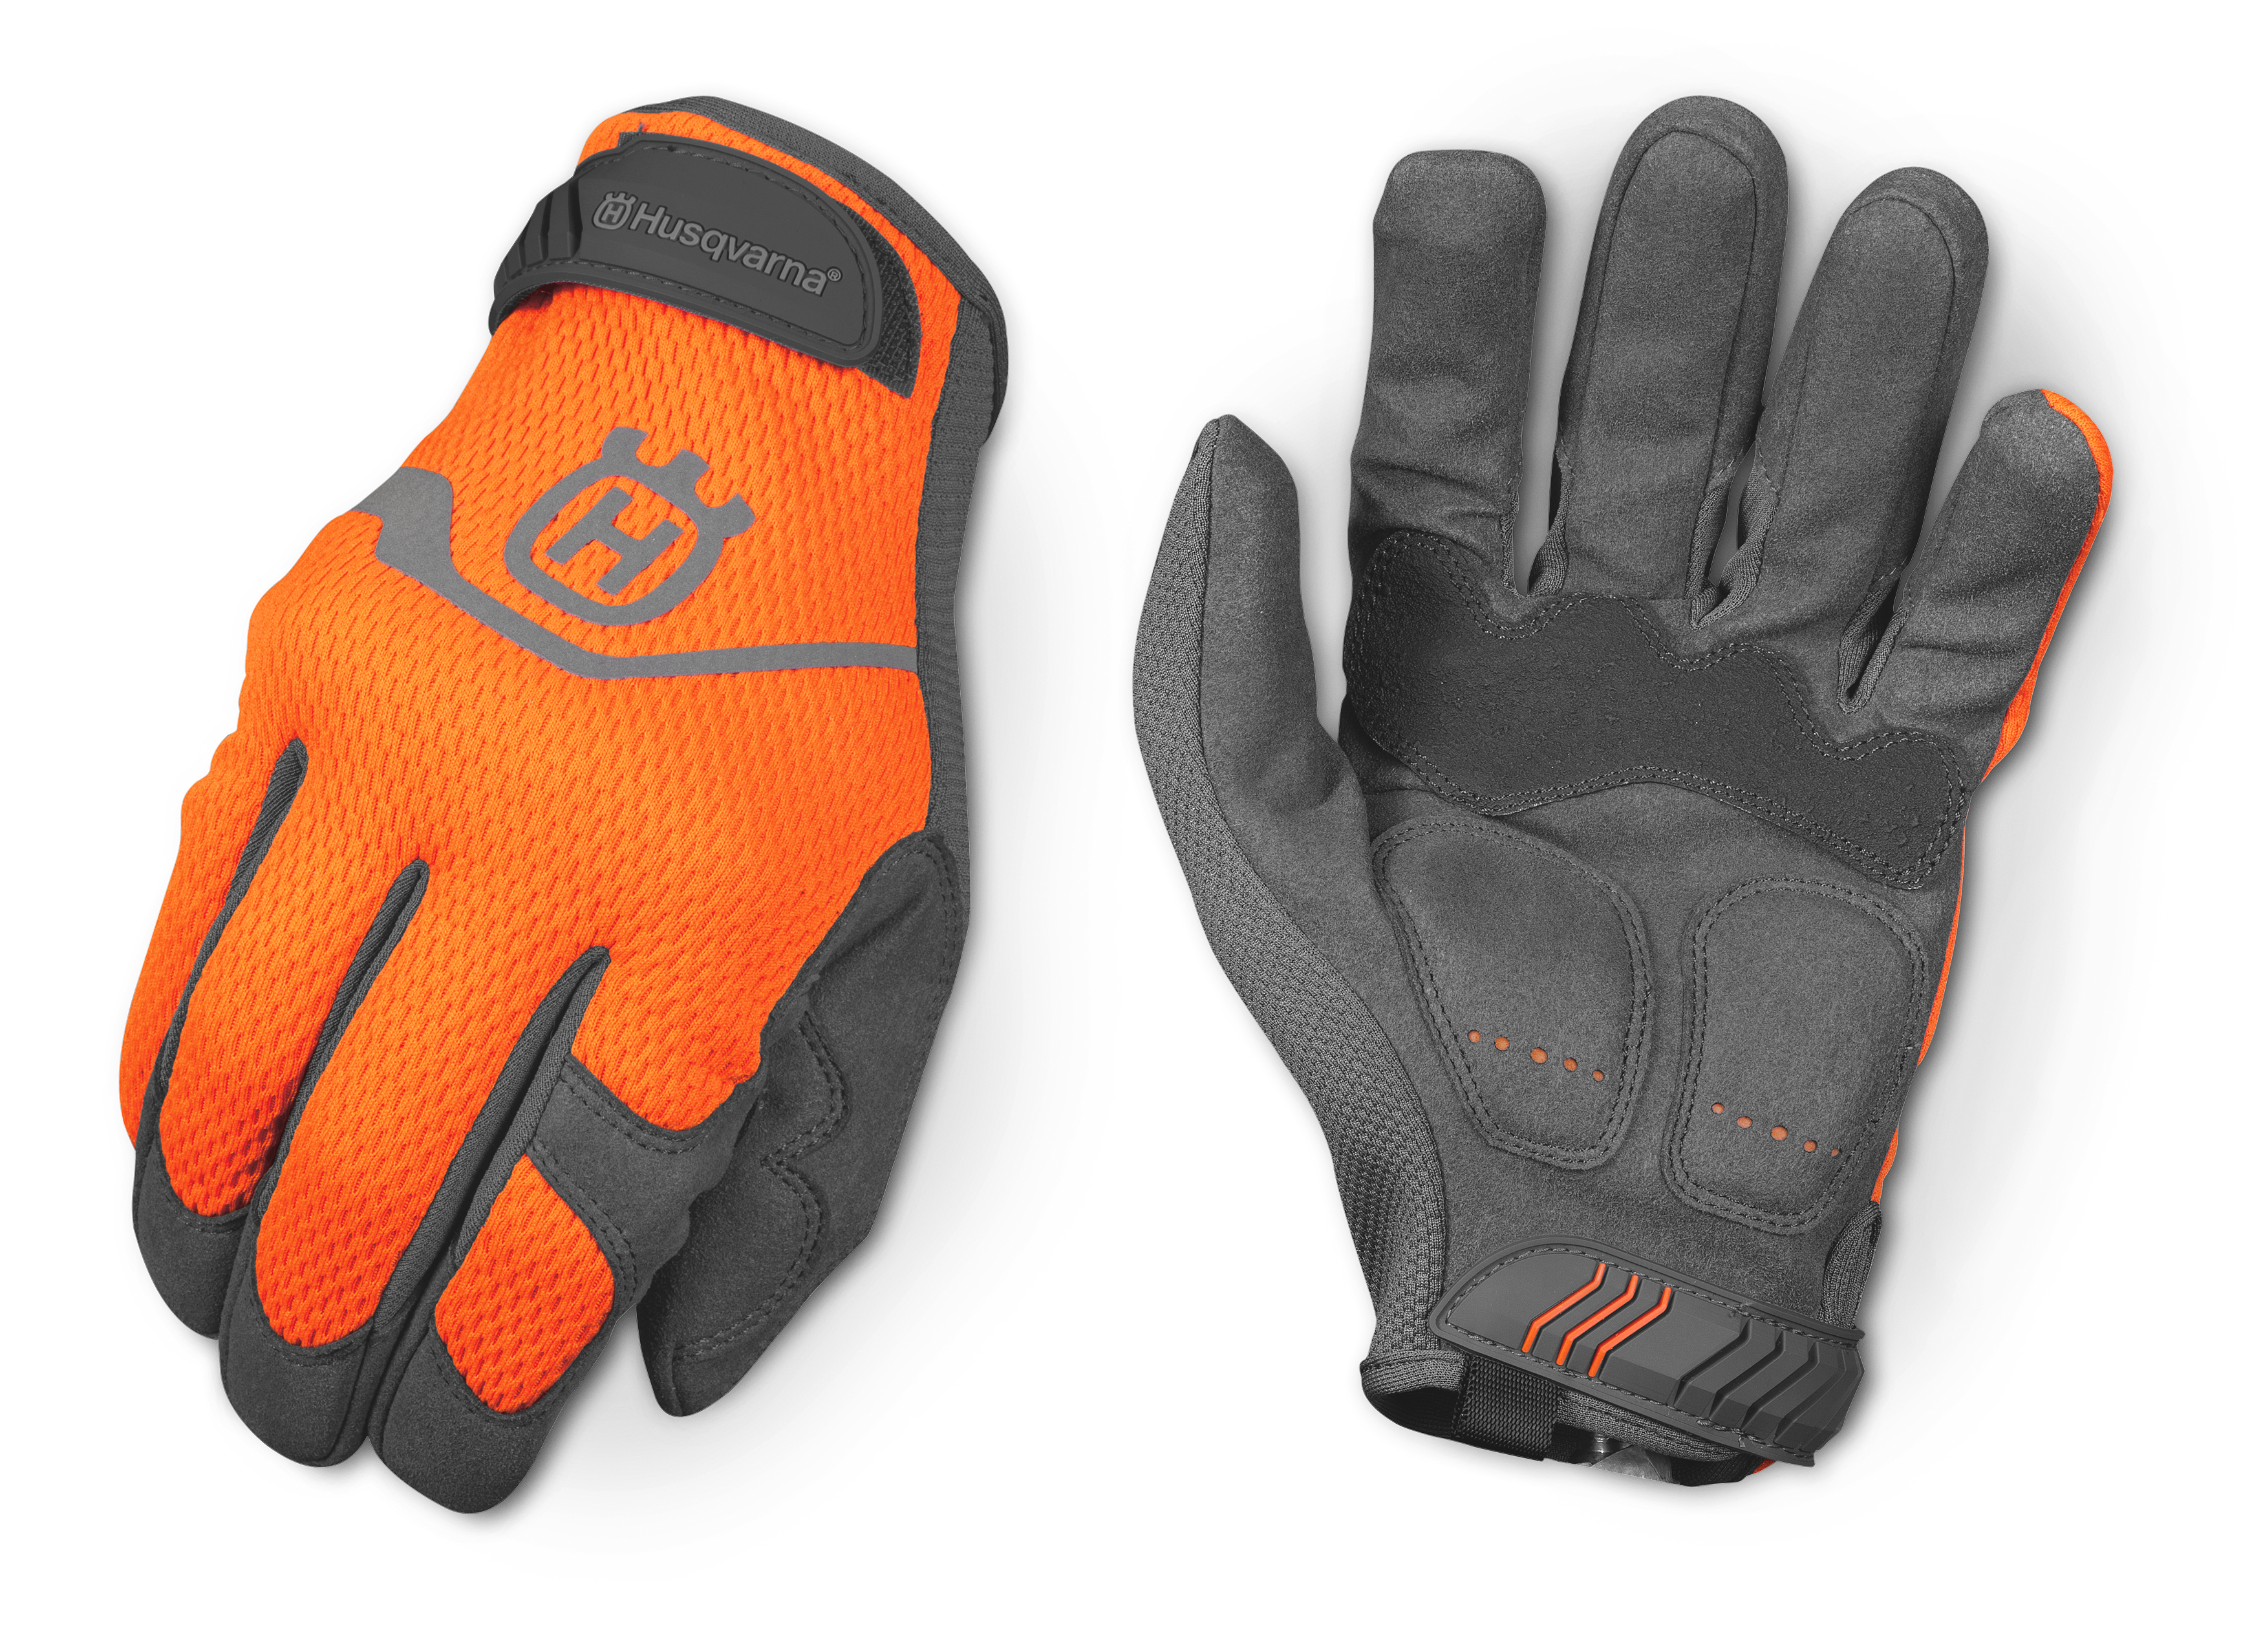 Image for Functional Work Gloves                                                                                                           from HusqvarnaB2C